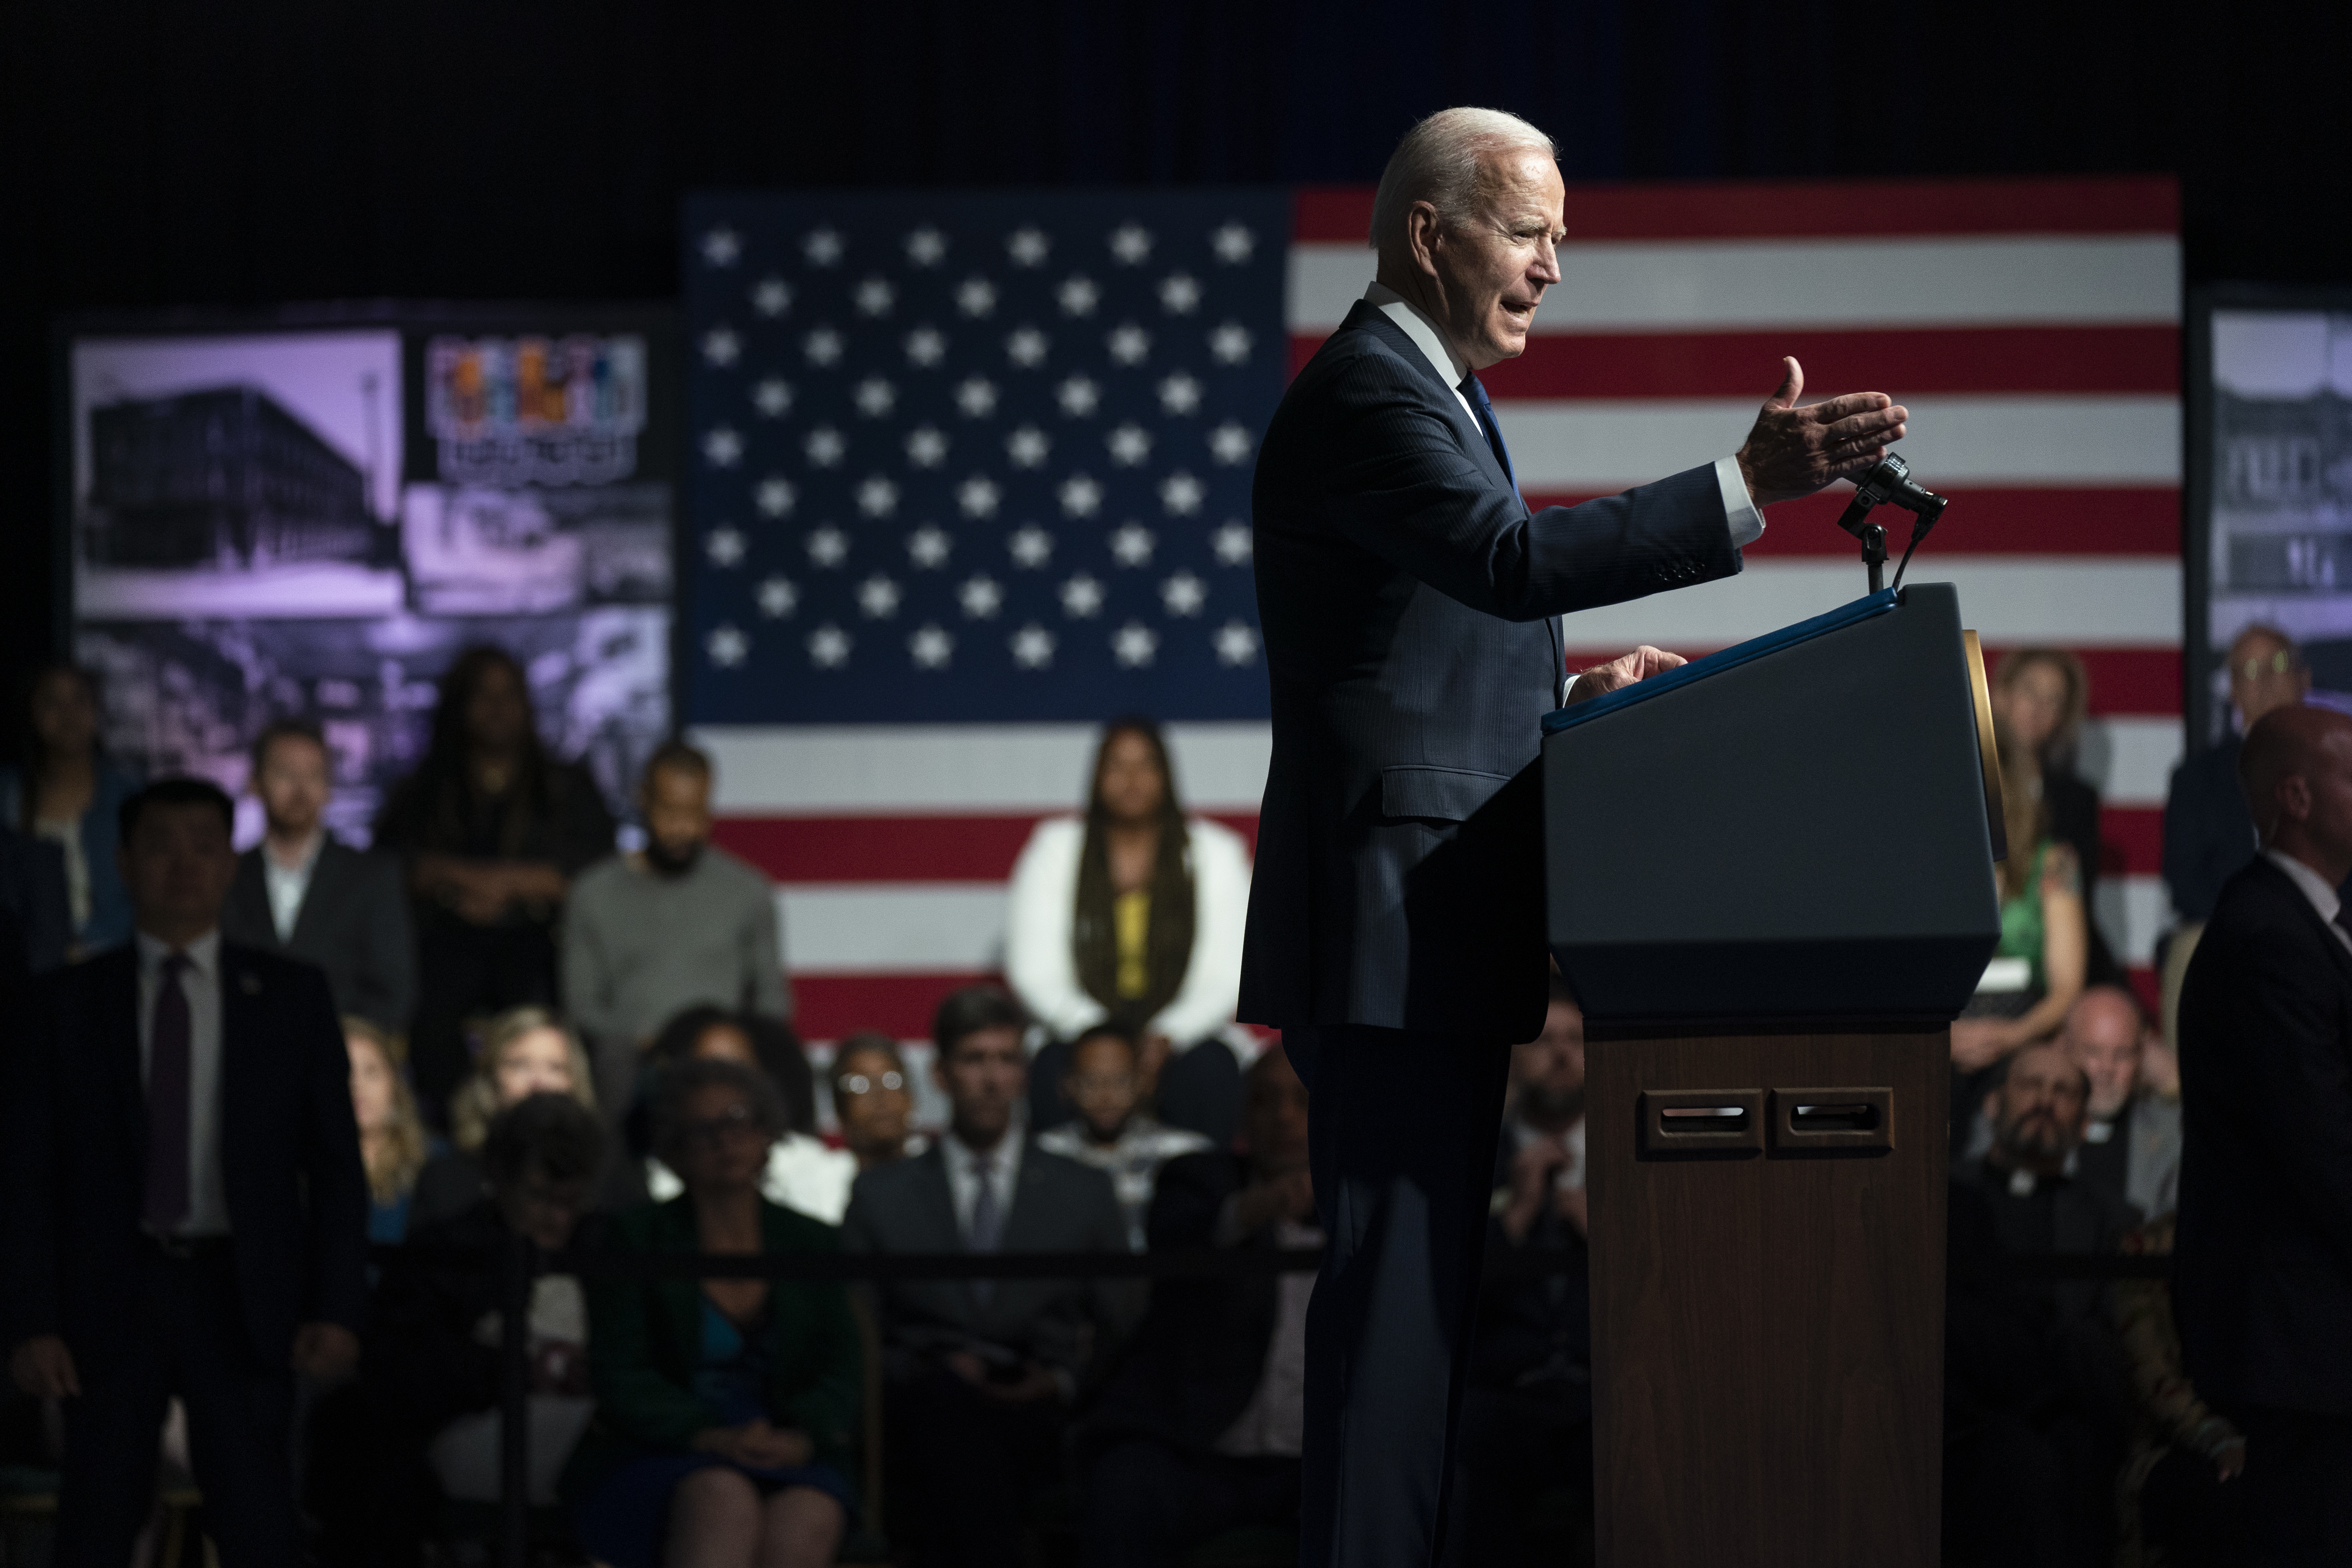 President Joe Biden speaks as he commemorates the 100th anniversary of the Tulsa race massacre, at the Greenwood Cultural Center, Tuesday, June 1, 2021, in Tulsa, Okla.